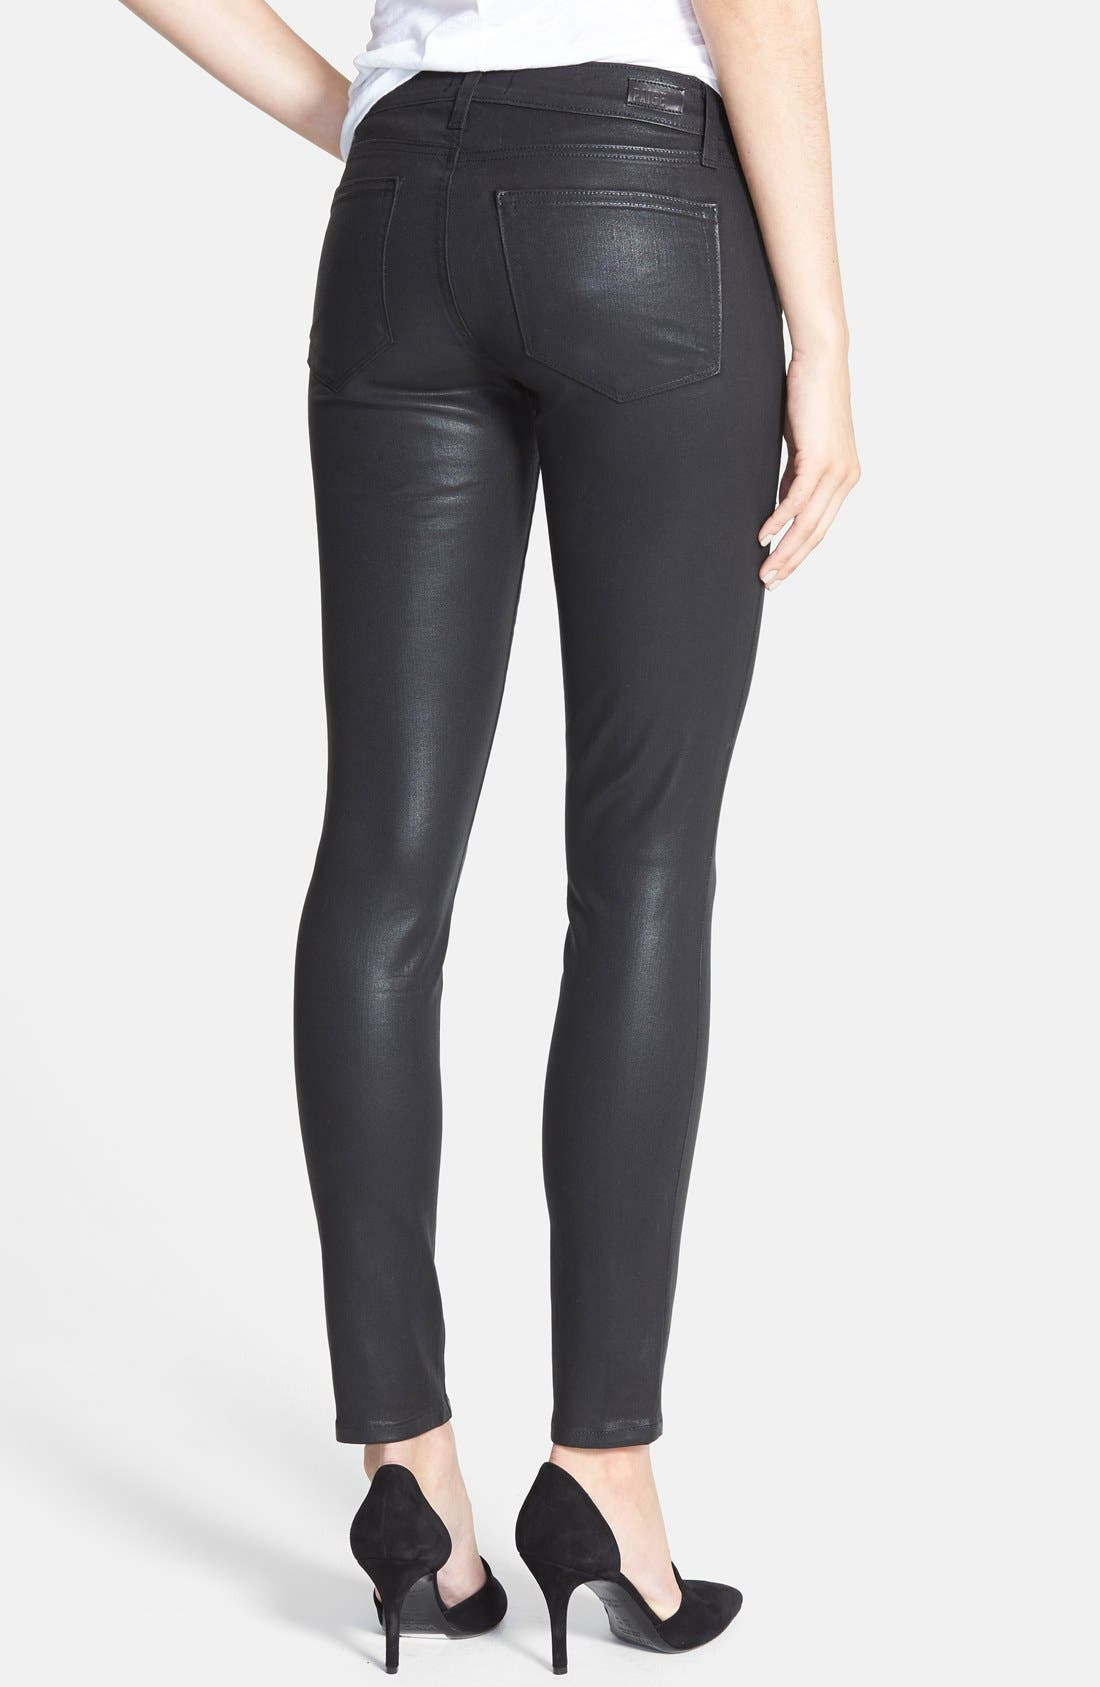 'Edgemont' Coated Ultra Skinny Jeans,                             Alternate thumbnail 2, color,                             Black Silk